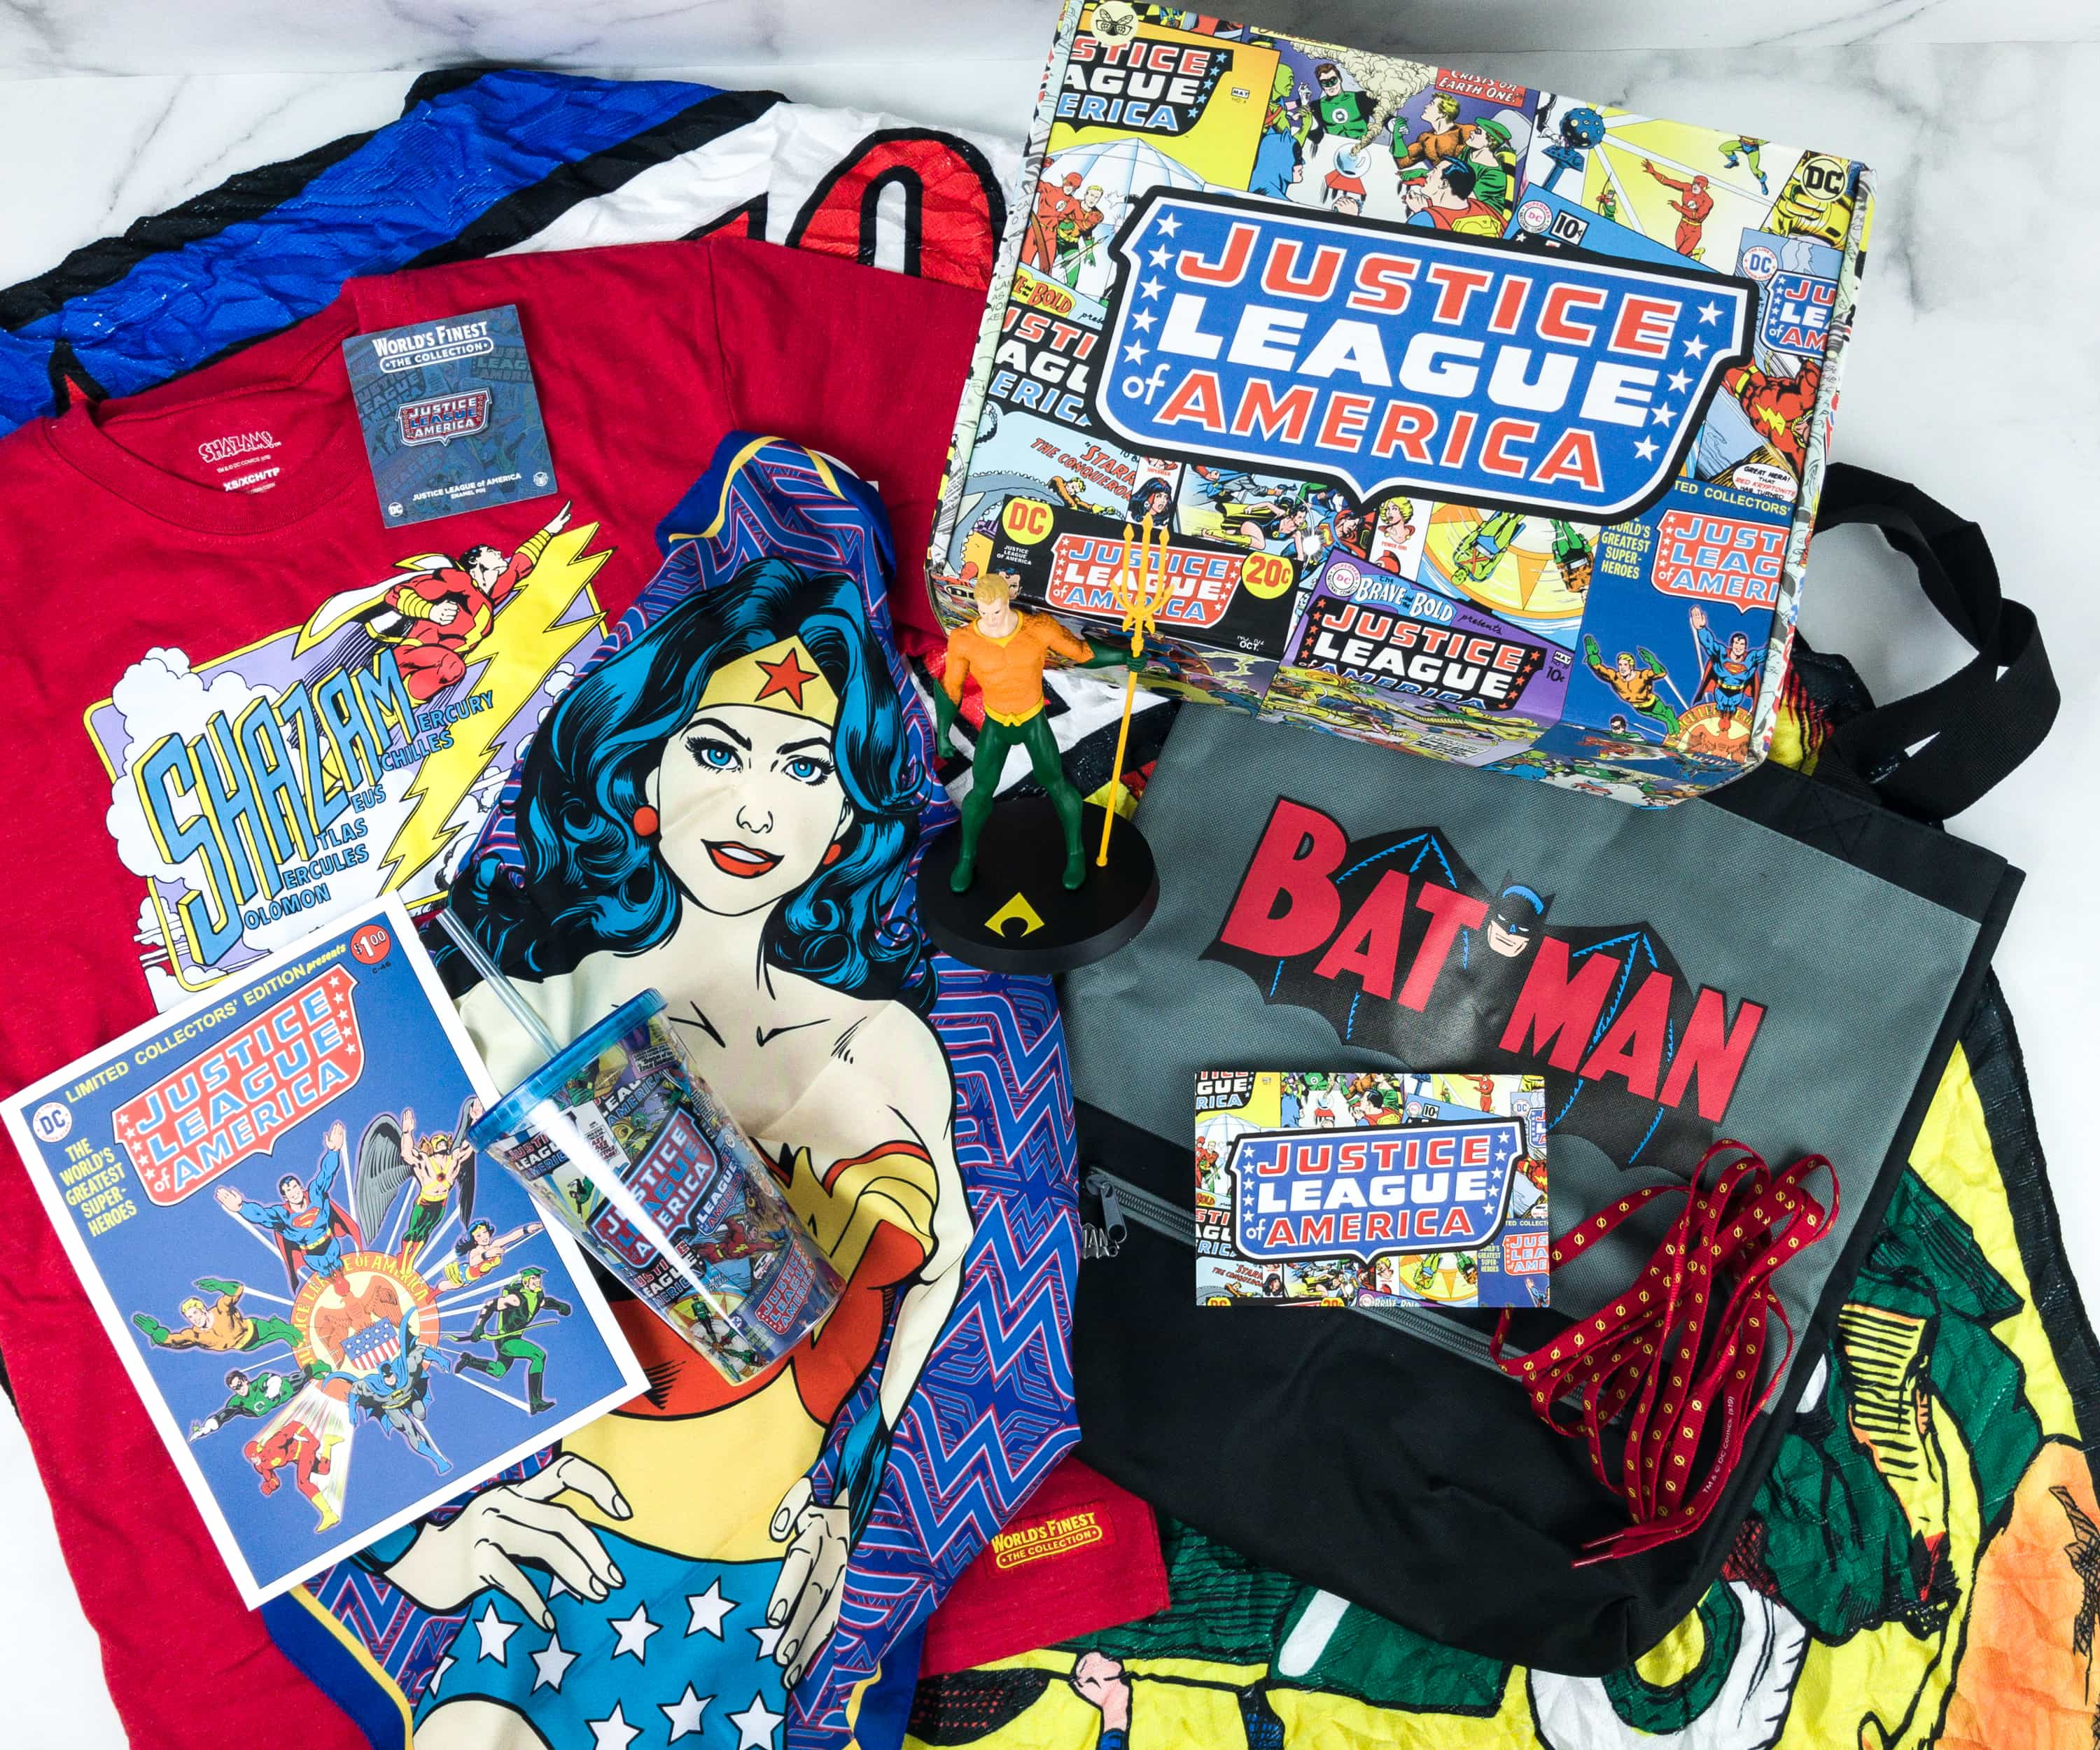 DC Comics World's Finest: The Collection Summer 2019 Box Review – RETRO JUSTICE LEAGUE